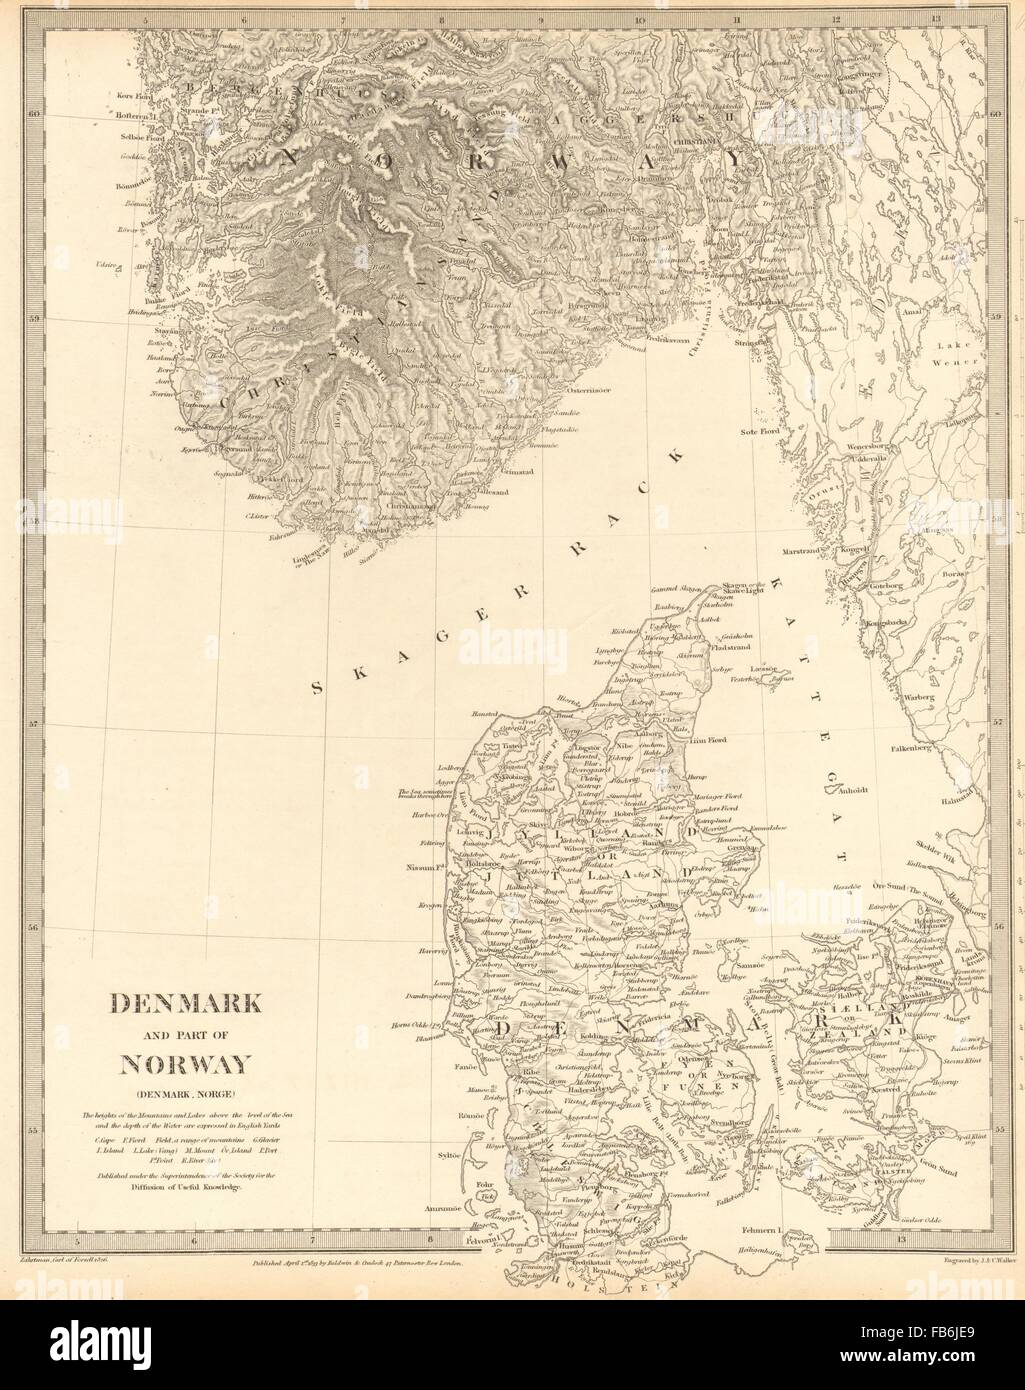 Karta Syd Norge.Southern Norway Map Stock Photos Southern Norway Map Stock Images